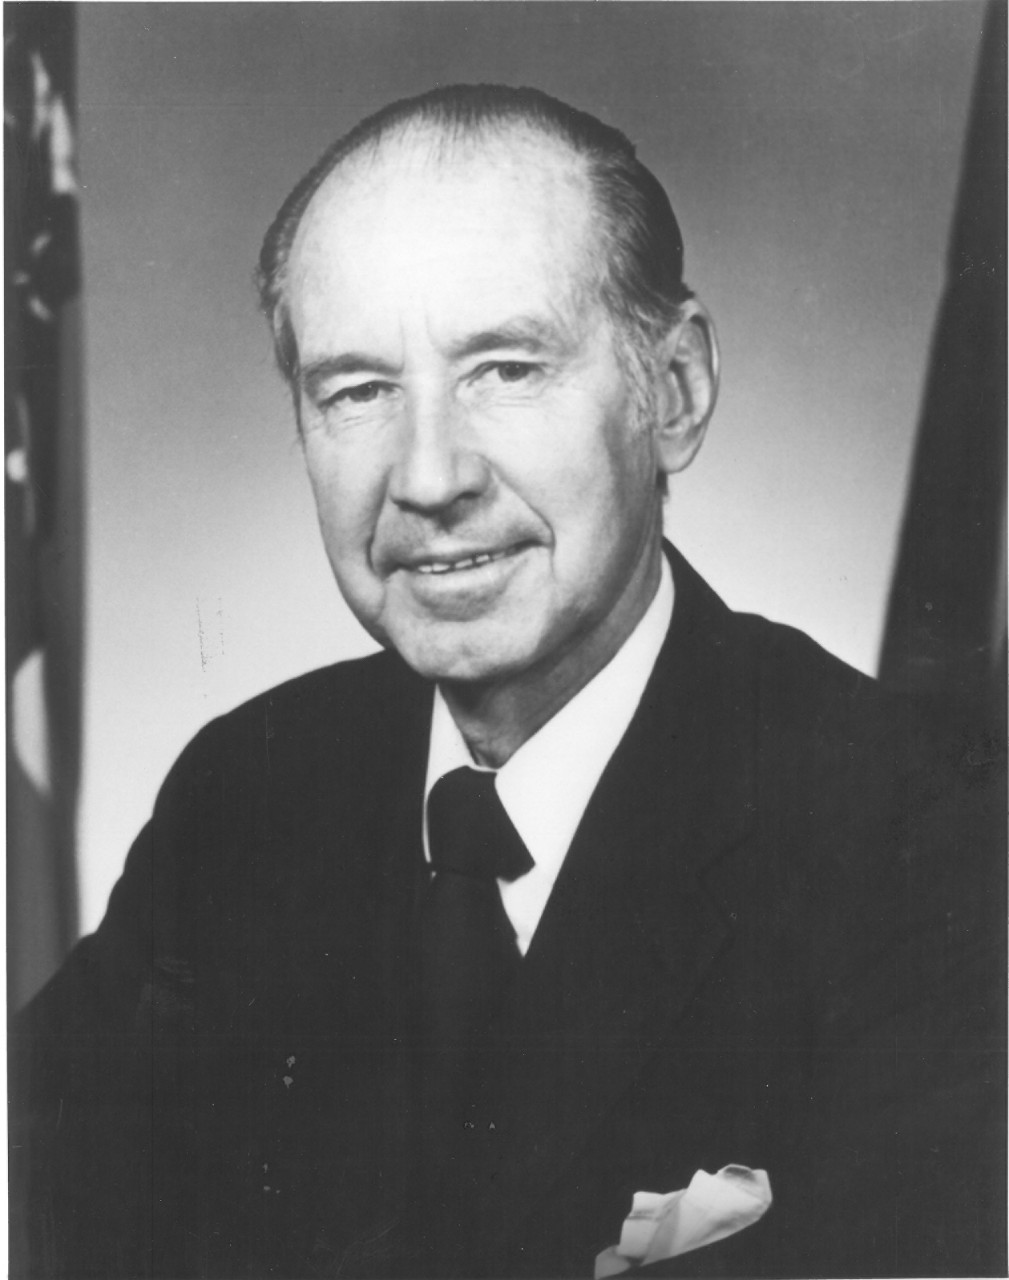 Secretary of the Navy William Graham Claytor, Jr.